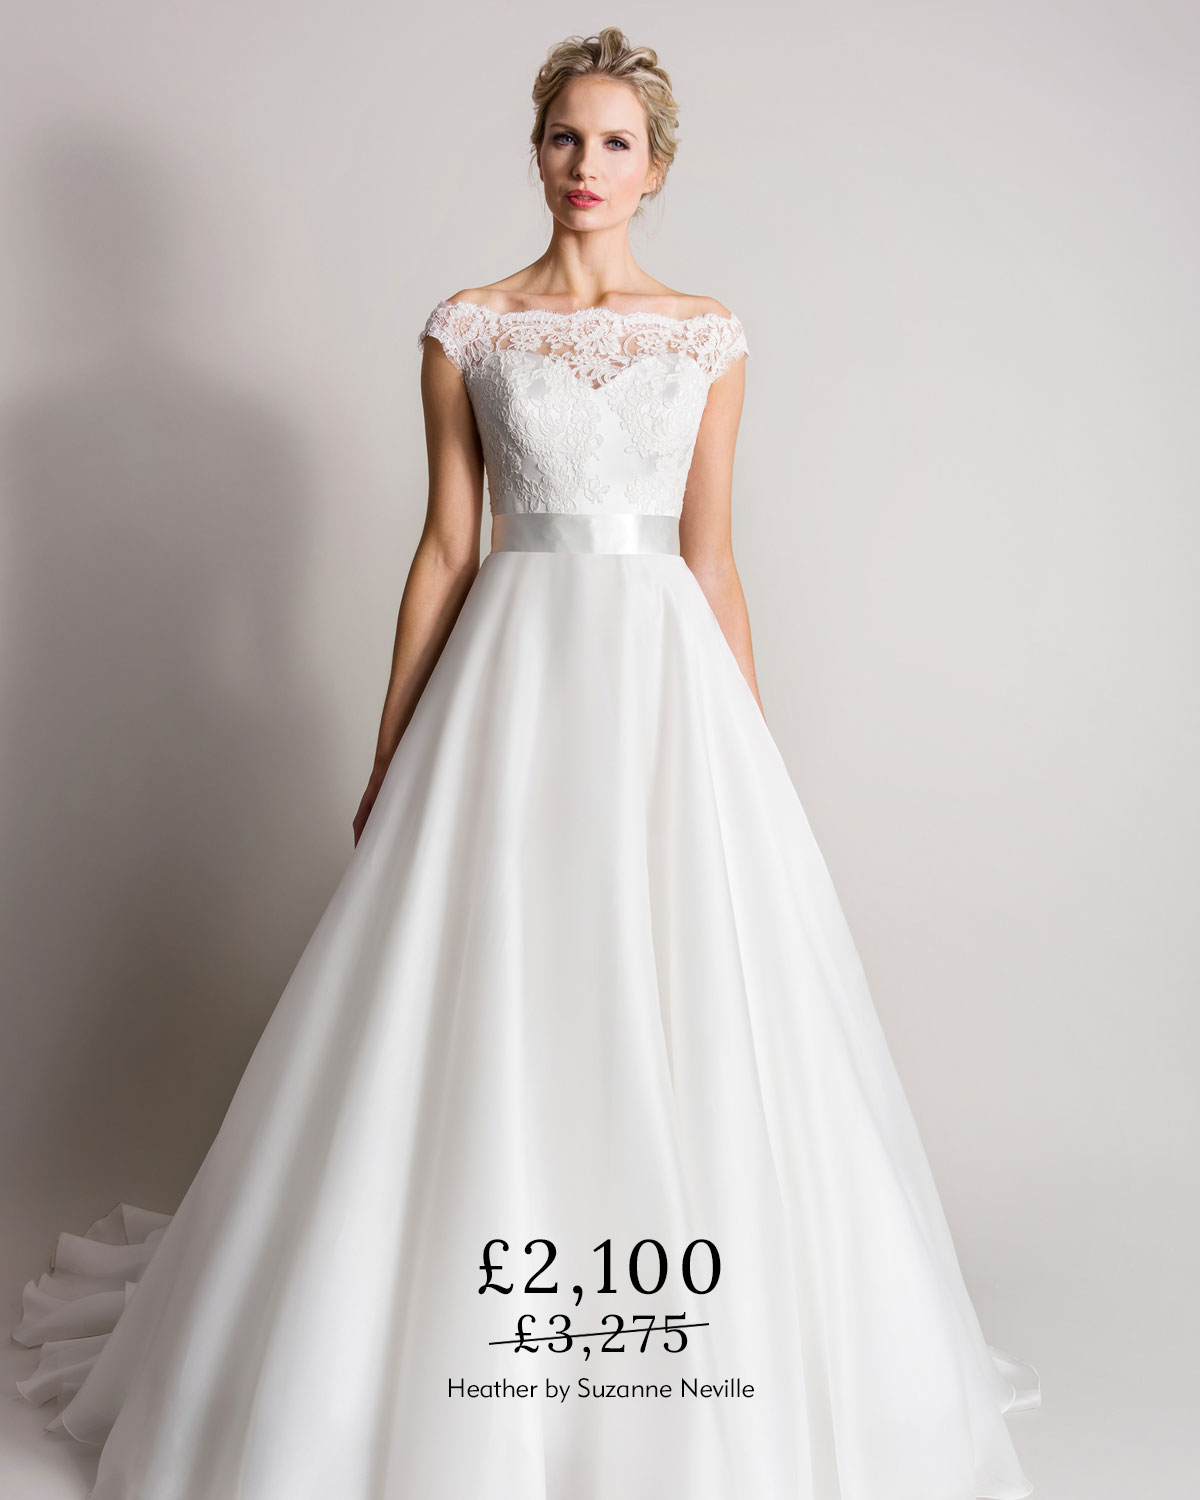 Top 20 Sample Sale Dresses The White Room,Second Hand Wedding Dresses Uk Size 18